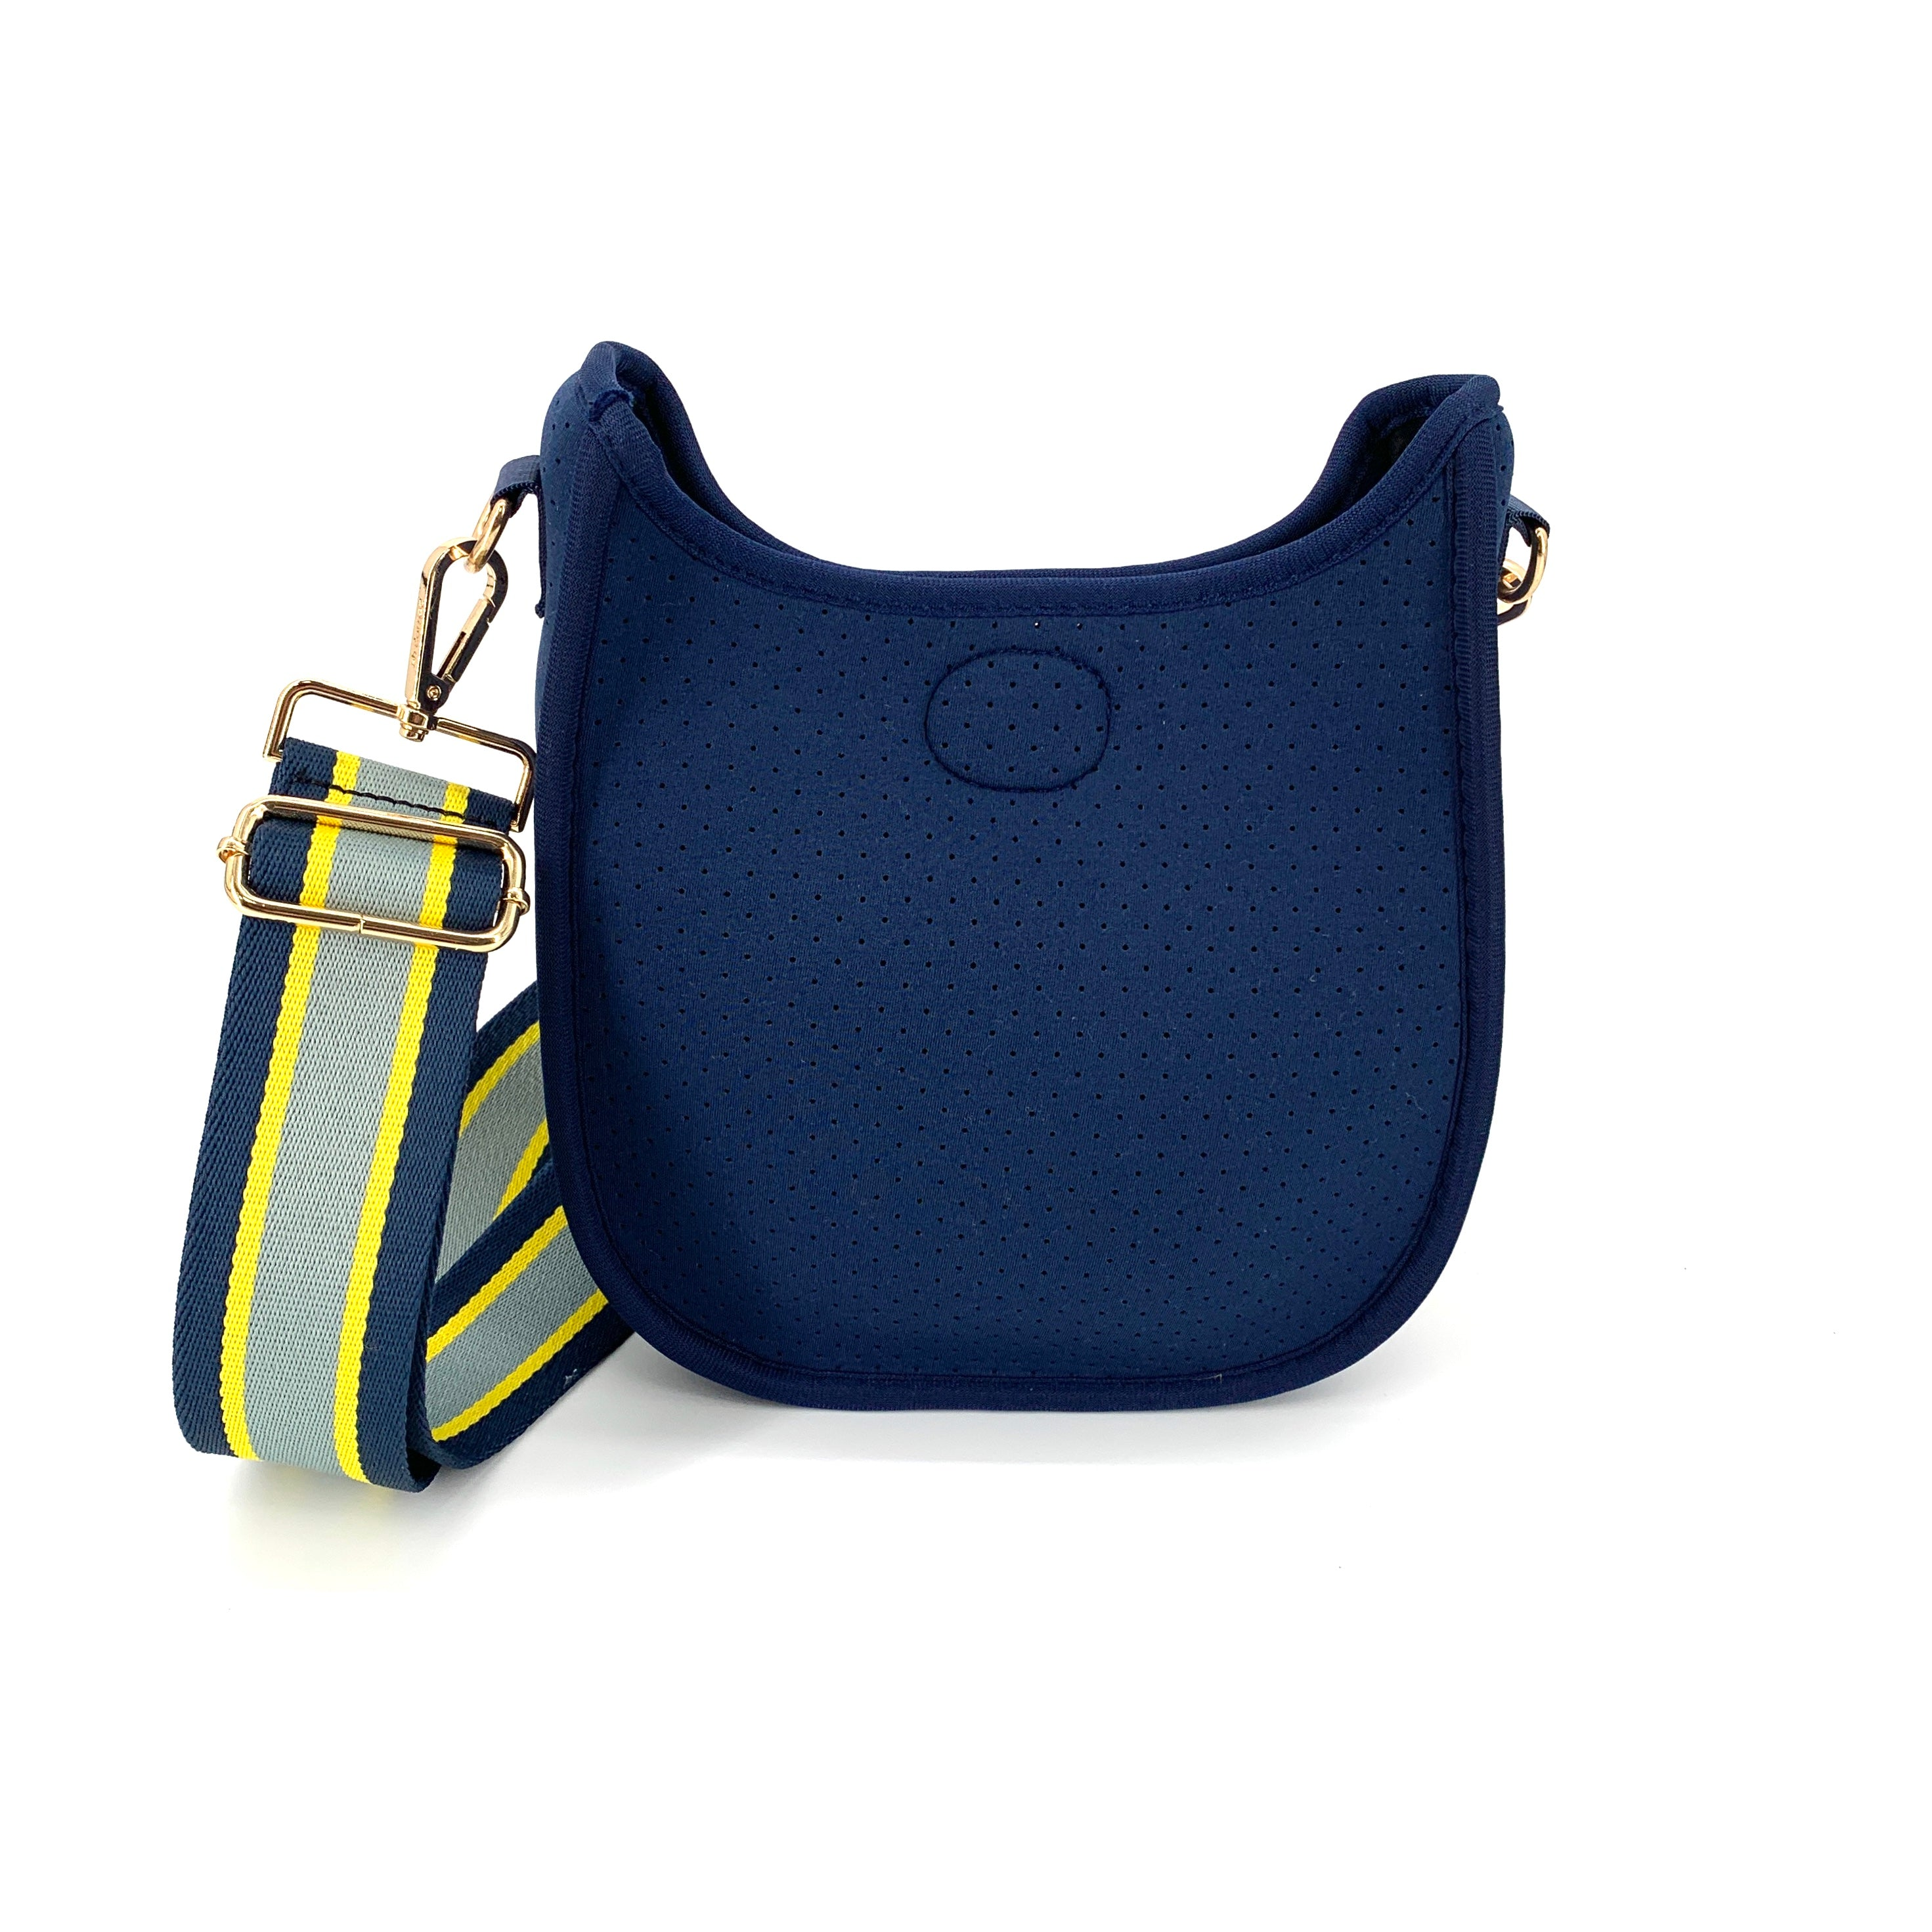 "Ahdorned N106MP. The Mini Neoprene Messenger in Navy with Yellow and Gray Stripe Strap. A mini take on the classic messenger bag featuring a snap top closure and exterior side pocket. Adjustable 2"" strap is included. Extends up to 54"". Bag measures 9.5"" H x 8.5"" W x 2"" D ."